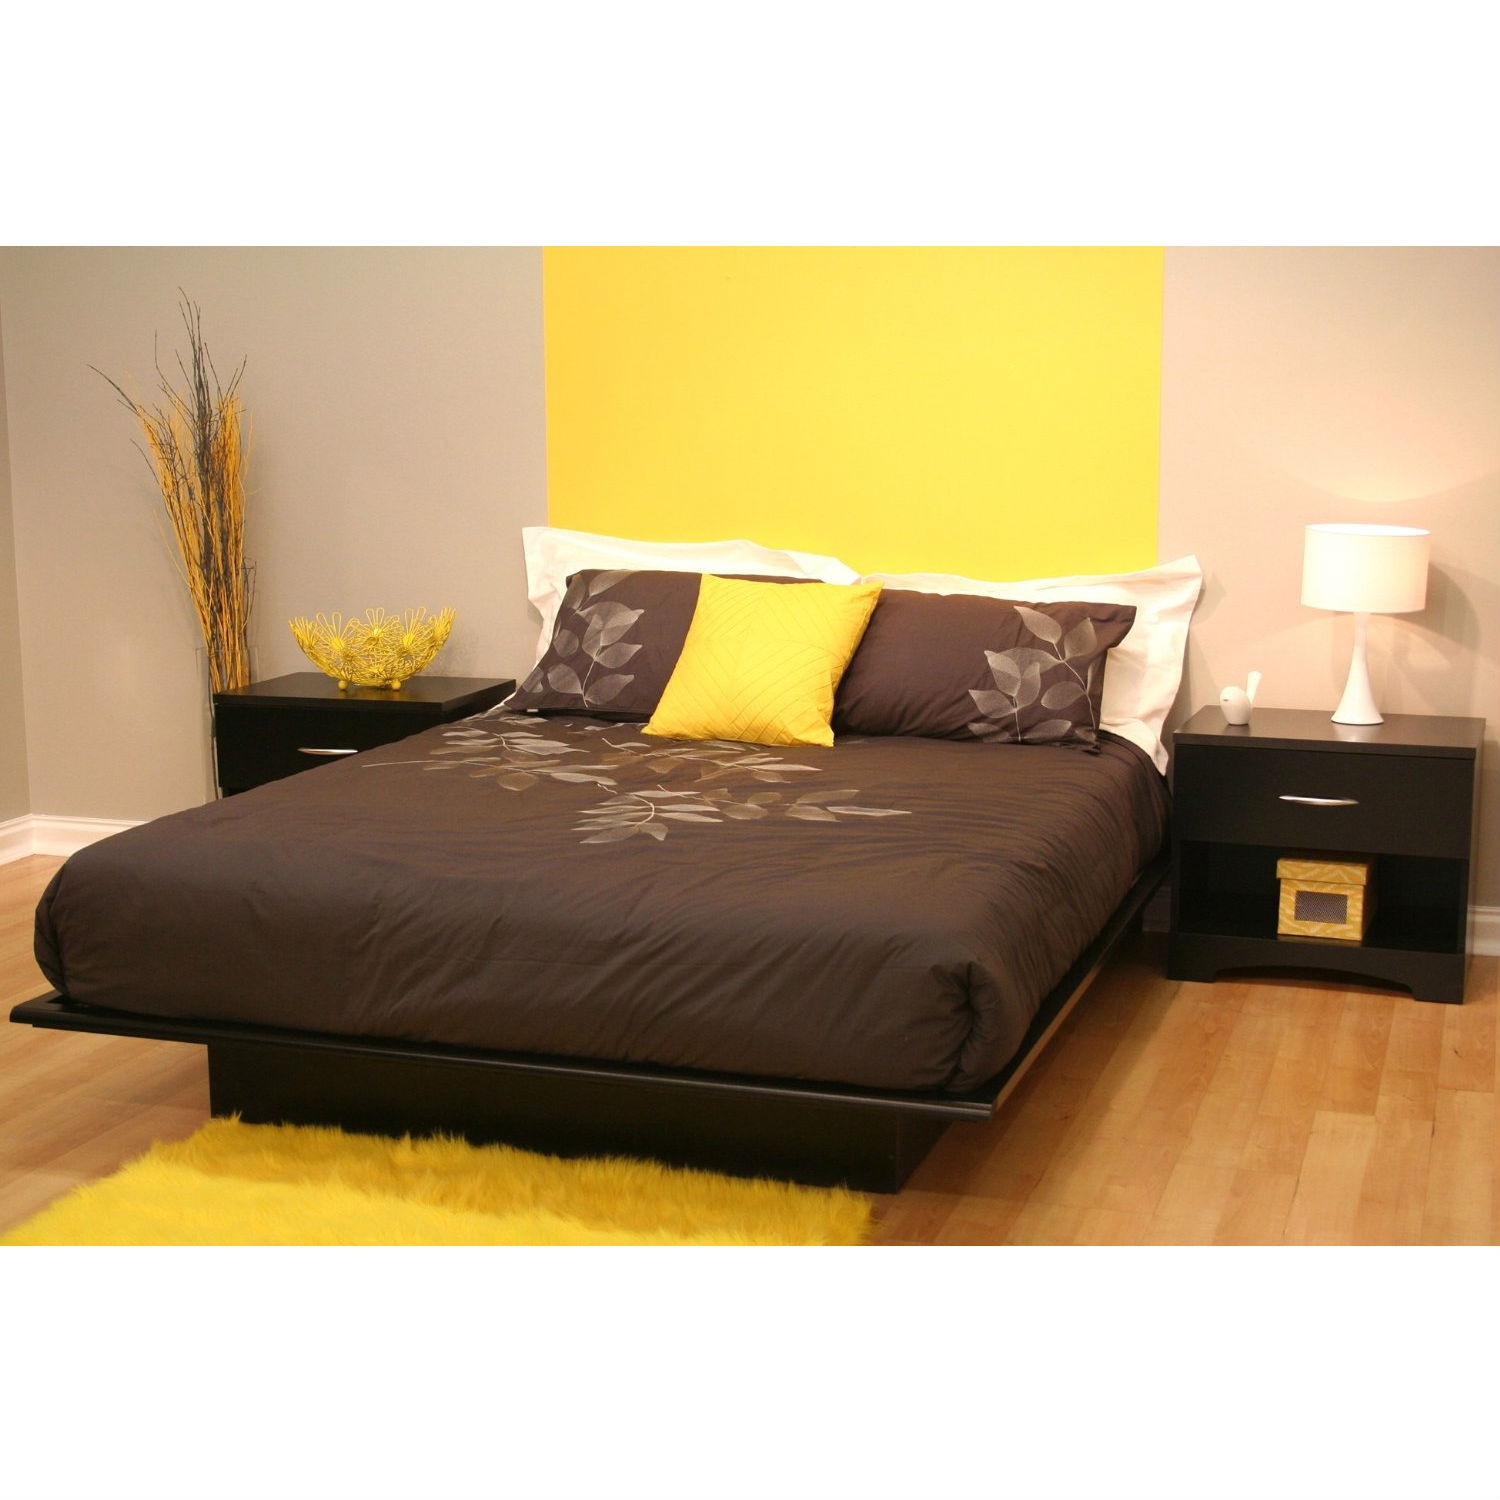 Queen size Modern Platform Bed Frame in Black Wood Finish, QBPBS18208 :  Simple and elegant, this Queen size Modern Platform Bed Frame in Black Wood Finish looks fabulous and adds contemporary styling to any room. Manufactured in Canada, this platform bed is crafted with superior quality materials. To ensure that the mattress always stays in place, the moldings of this bed are crafted with profiled edges. Constructed from Eco-friendly, EPP-compliant laminated particle board, this bed is sure to stay tough for years. It's gorgeous black finish blends well with your interiors and has a rich texture. Made from non-toxic materials and components, this South Shore Lexington Collection Platform Bed ensures a healthy environment for you and your family. Being FSC certified, this modern style bed has not contributed towards deforestation or exploitation of wood workers. It is CARB compliant and is ISTA 3A certified for safety during transportation. This bed from Lexington collection is available in three different sizes and has a weight limit of over 500 lbs. It does not require a box spring and is not drilled to accommodate headboards. All in all, this platform bed is a great combination of stunning looks and functionality. This beautiful bed is available in different sizes, so that you pick the best one that goes with your bedroom. 5-year manufacturer's limited warranty; Assembly Required: Yes; CPSIA or CPSC Compliant: Yes; Country of Manufacture: Canada; Eco-Friendly: Yes; Weight Capacity: 500lbs. Product Care: Wipe clean with dry cloth.